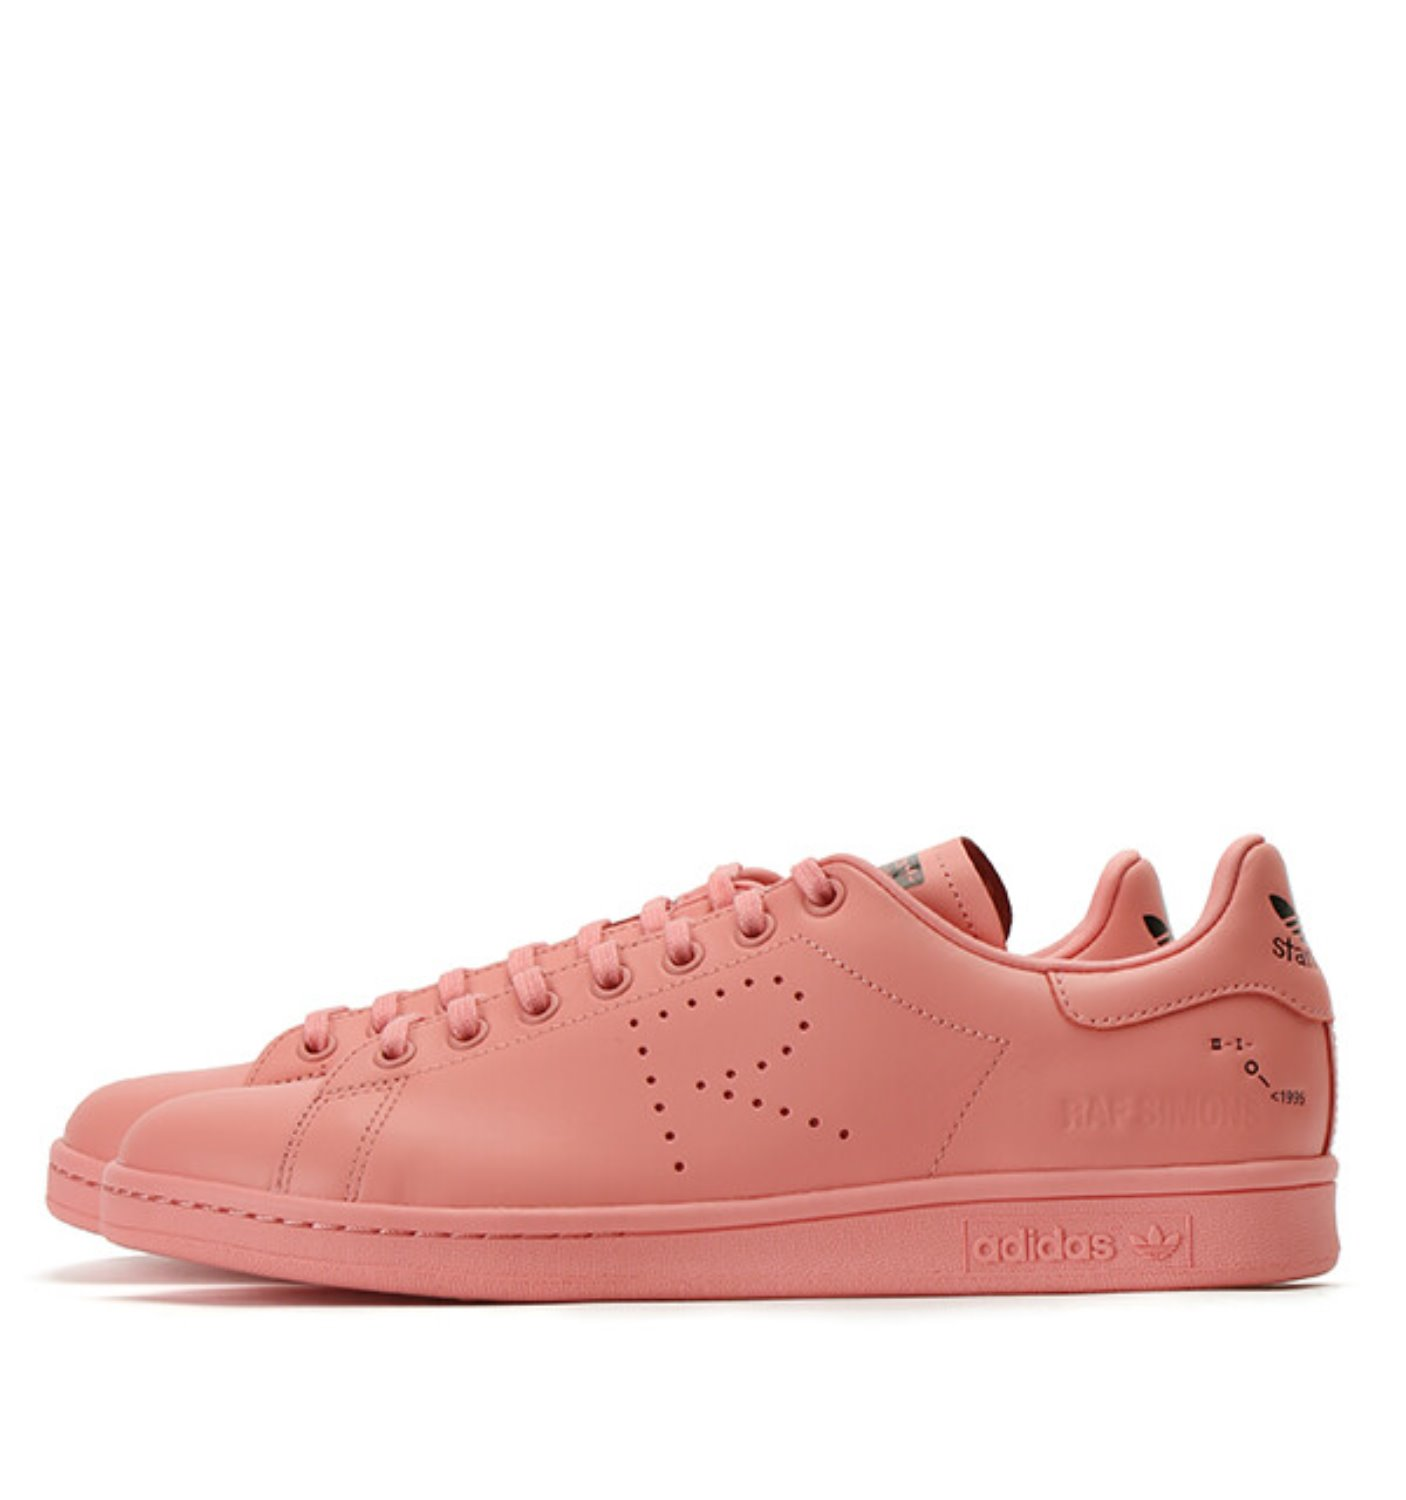 RS STAN SMITH TACROS/BLIPNK(F34269)